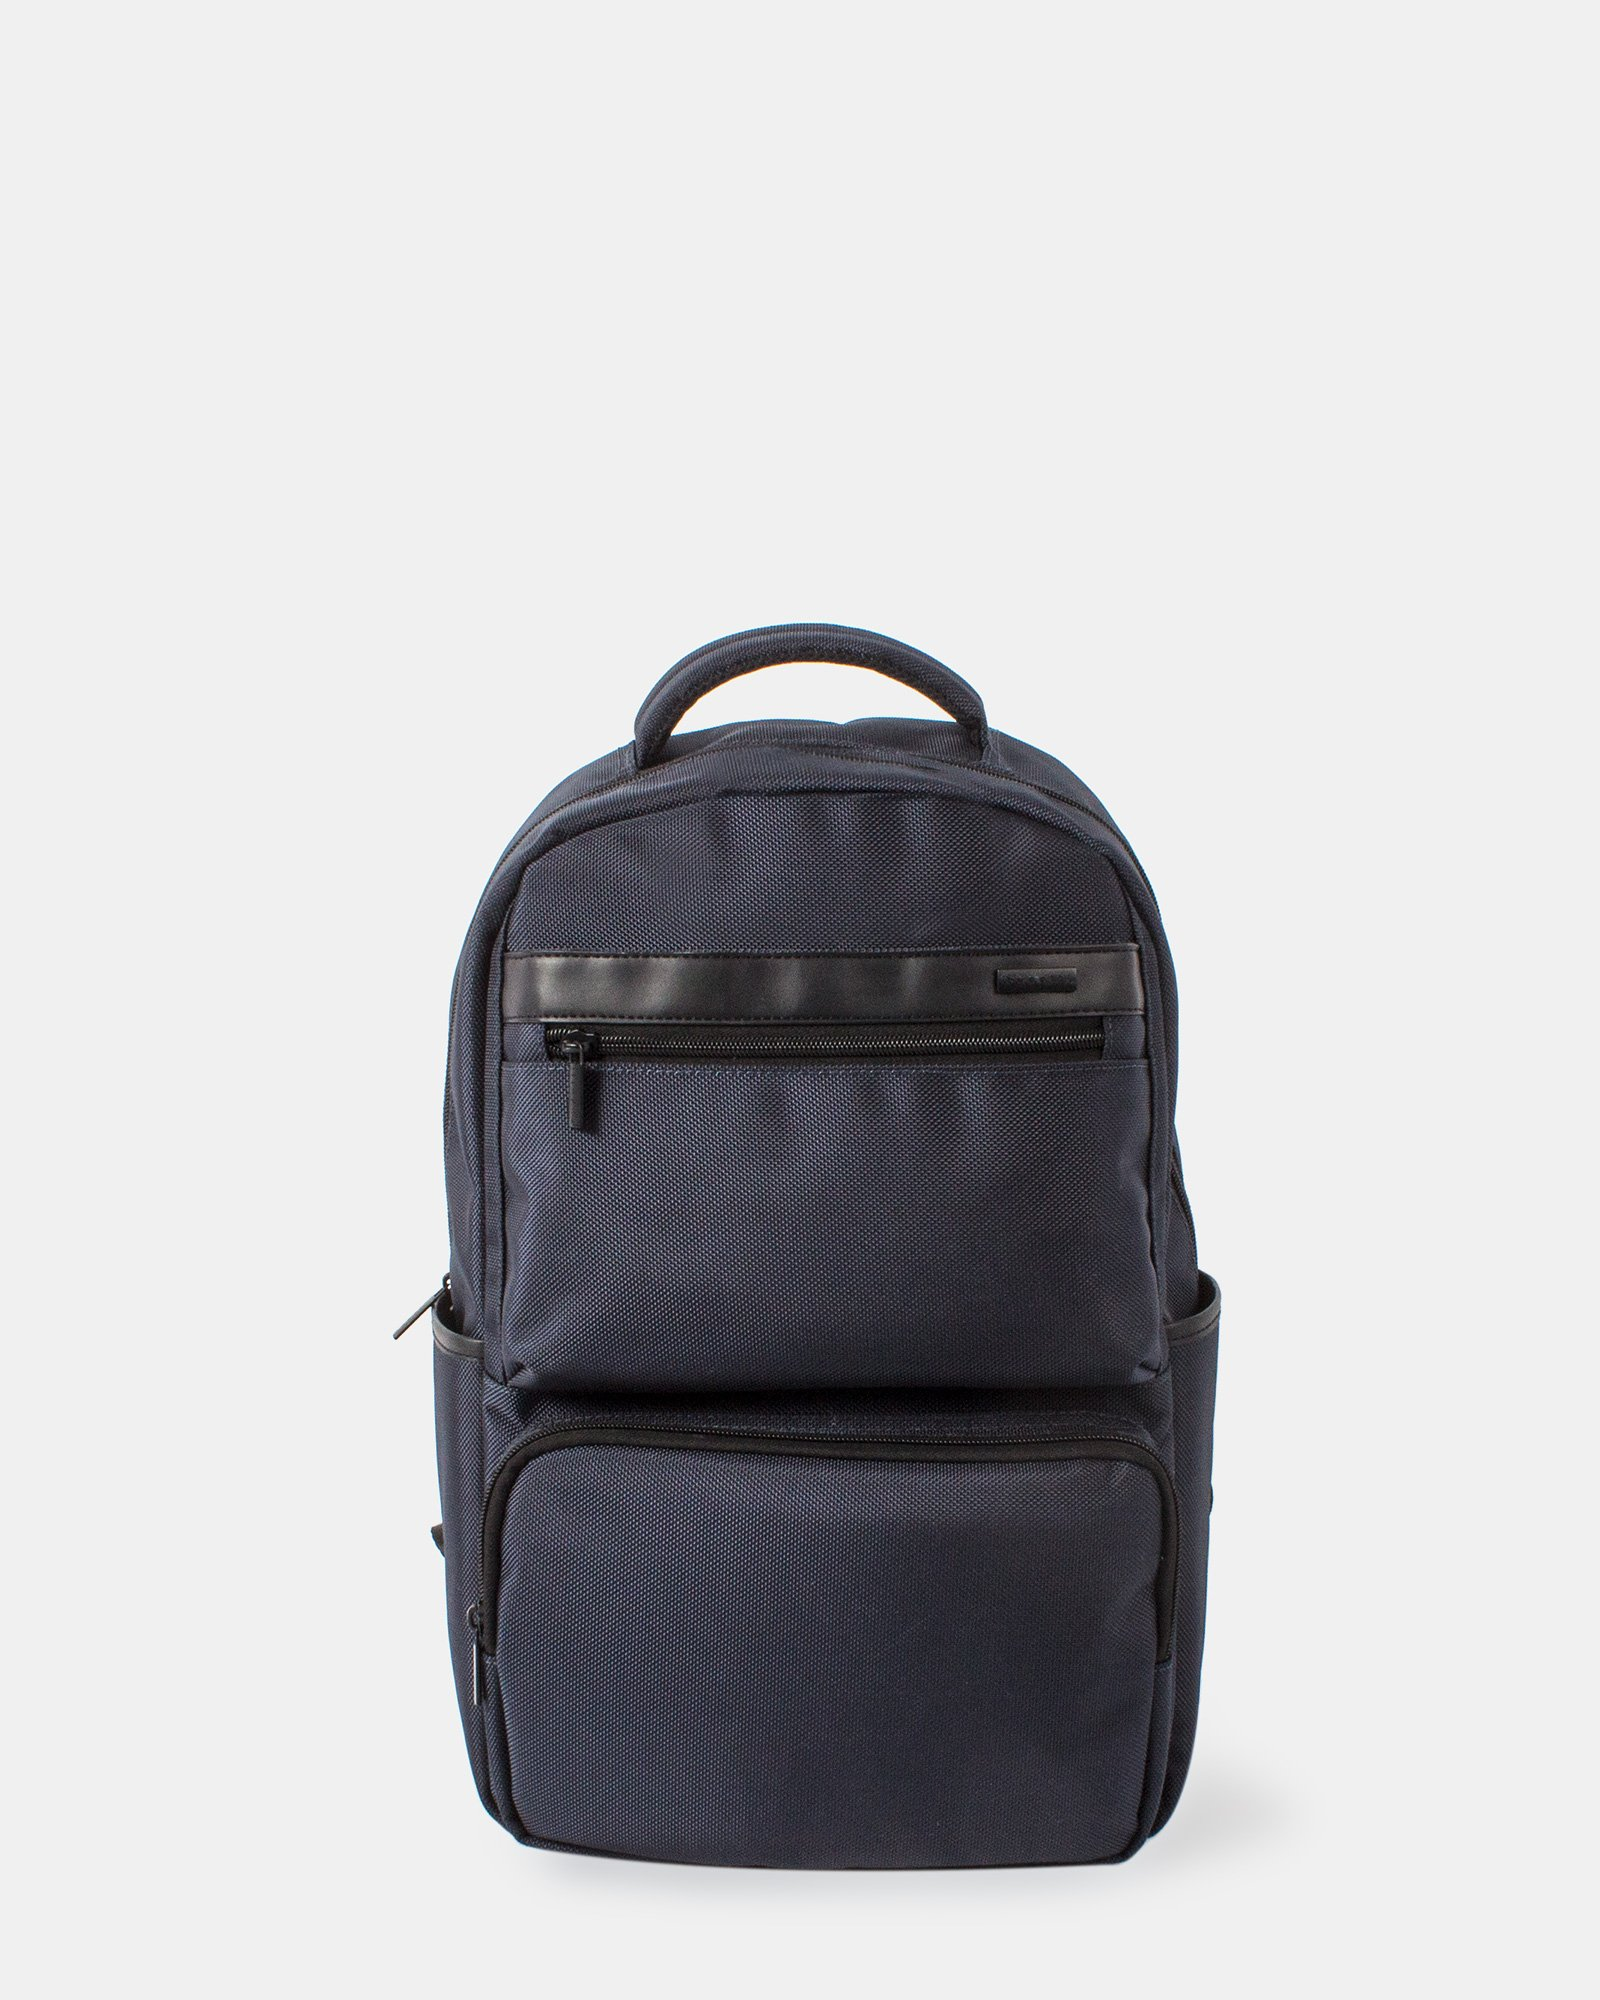 BACKPACK - Bugatti - Zoom